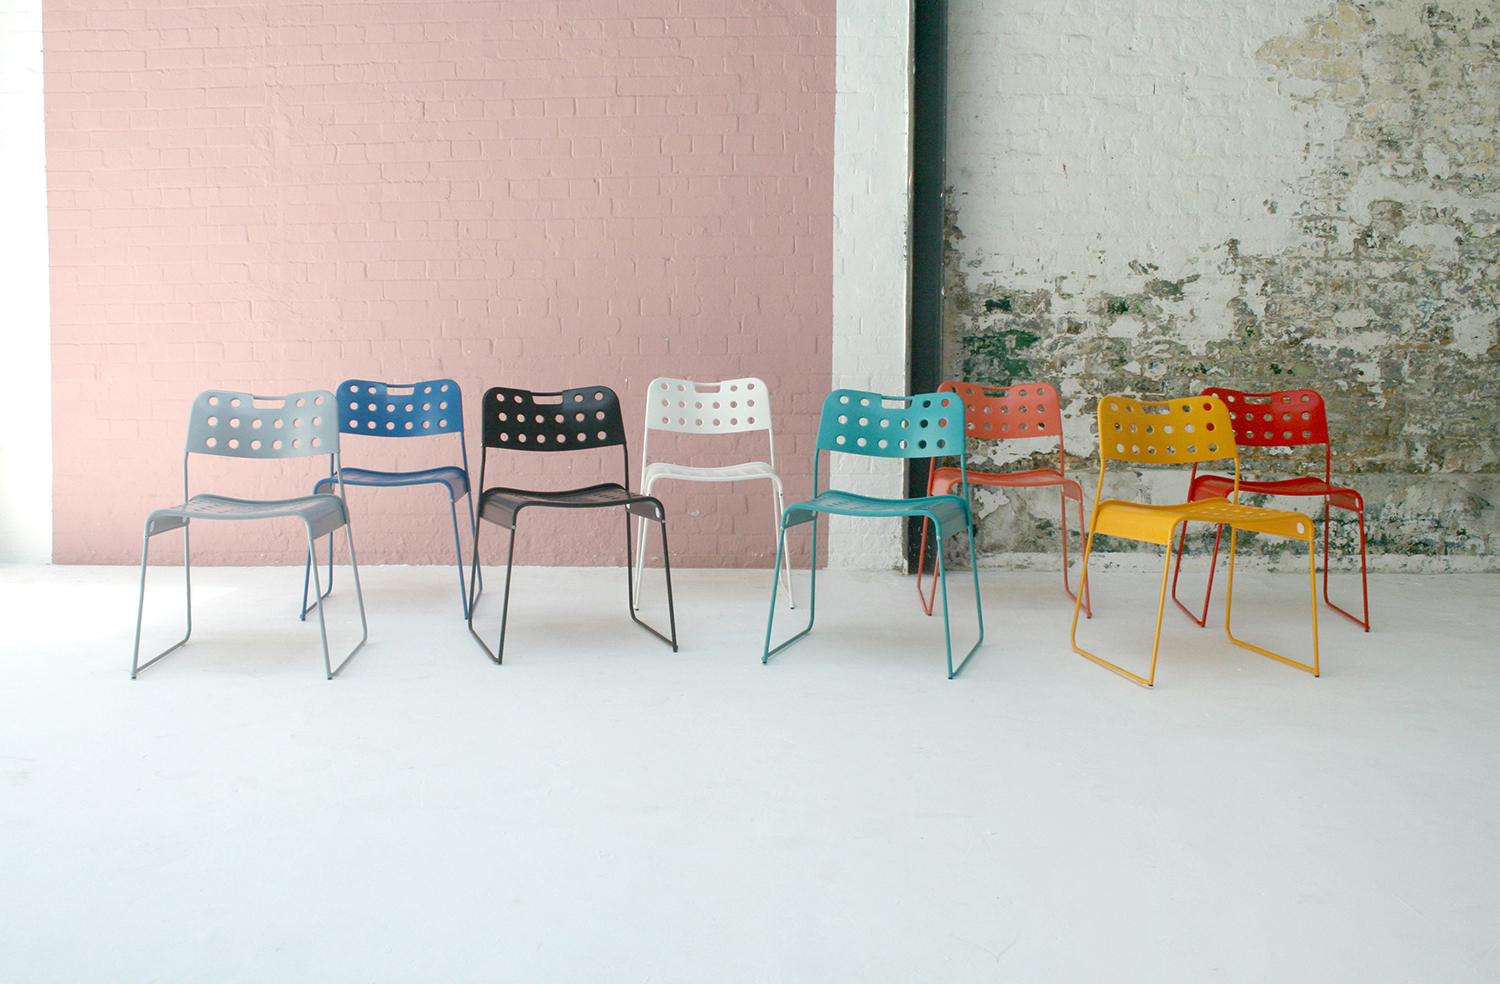 OMK 'OMKstak' Chair - Designed 1971